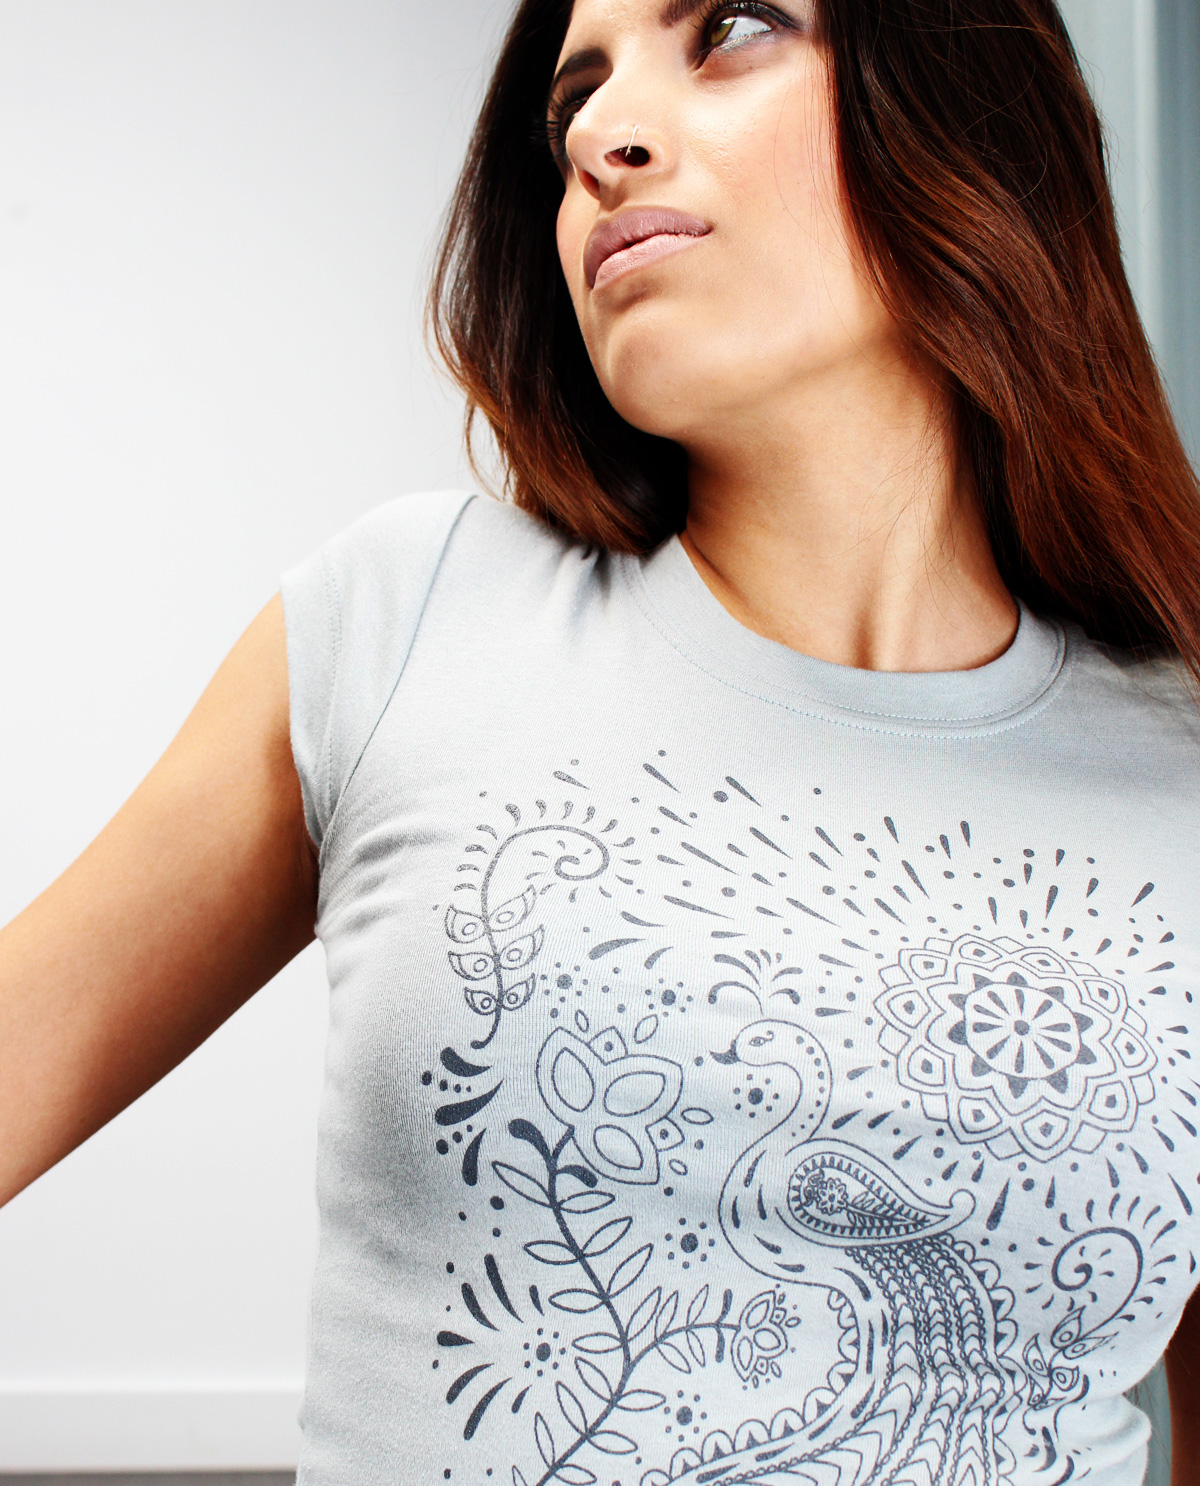 South Asian female model wearing Mendhi Peacock graphic design sheer extra long fitted t.shirt. South Asian Desi Themed Graphic Design t.shirts by Brown Man Clothing Co.